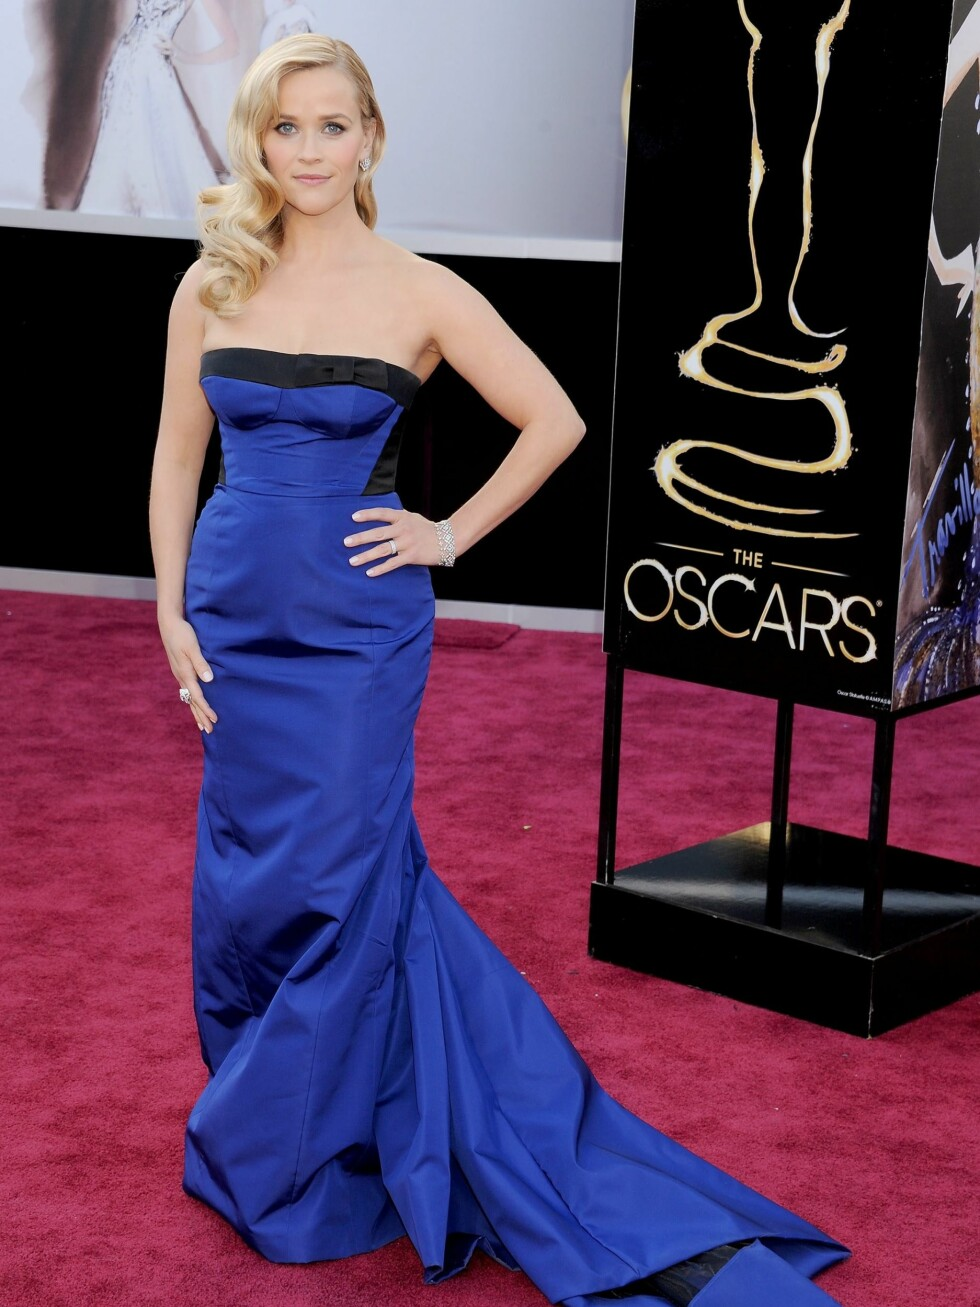 Reese Witherspoon Foto: All Over Press